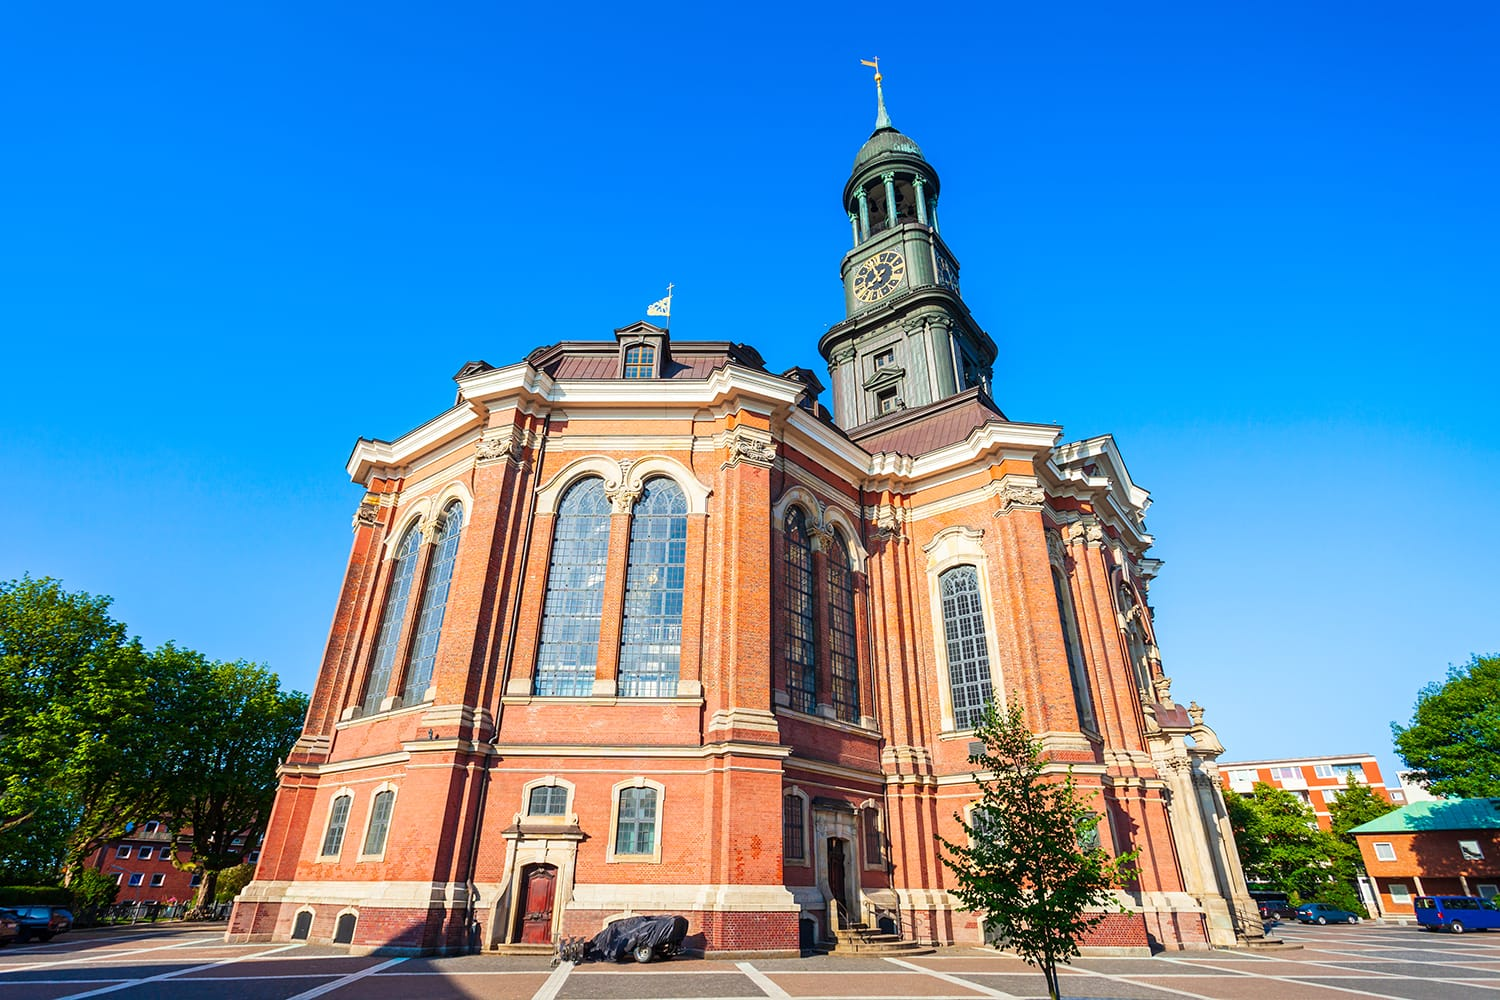 St. Michael Church is the most famous lutheran church in the Hamburg city, Germany